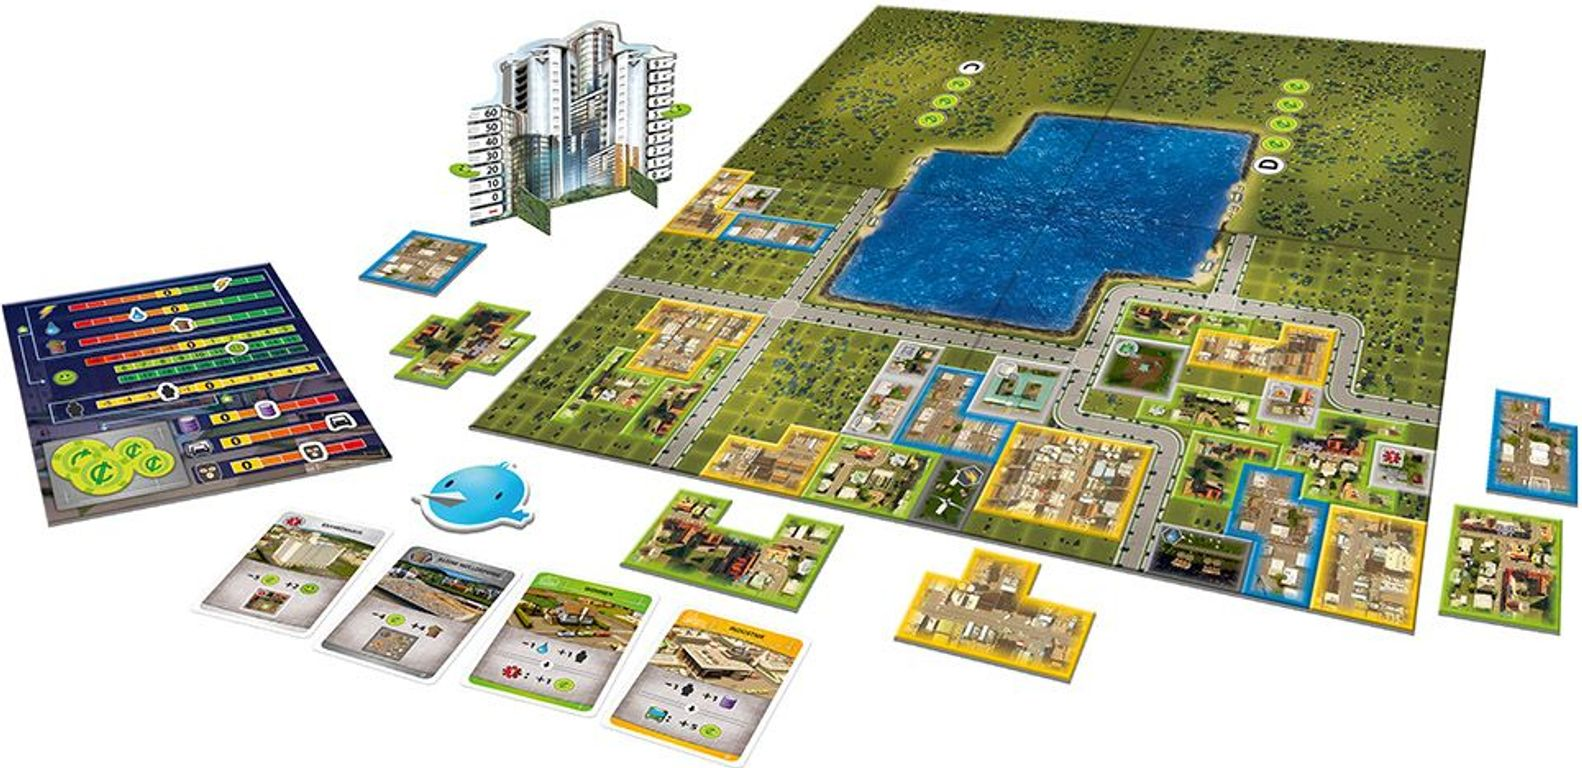 Cities: Skylines - The Board Game components